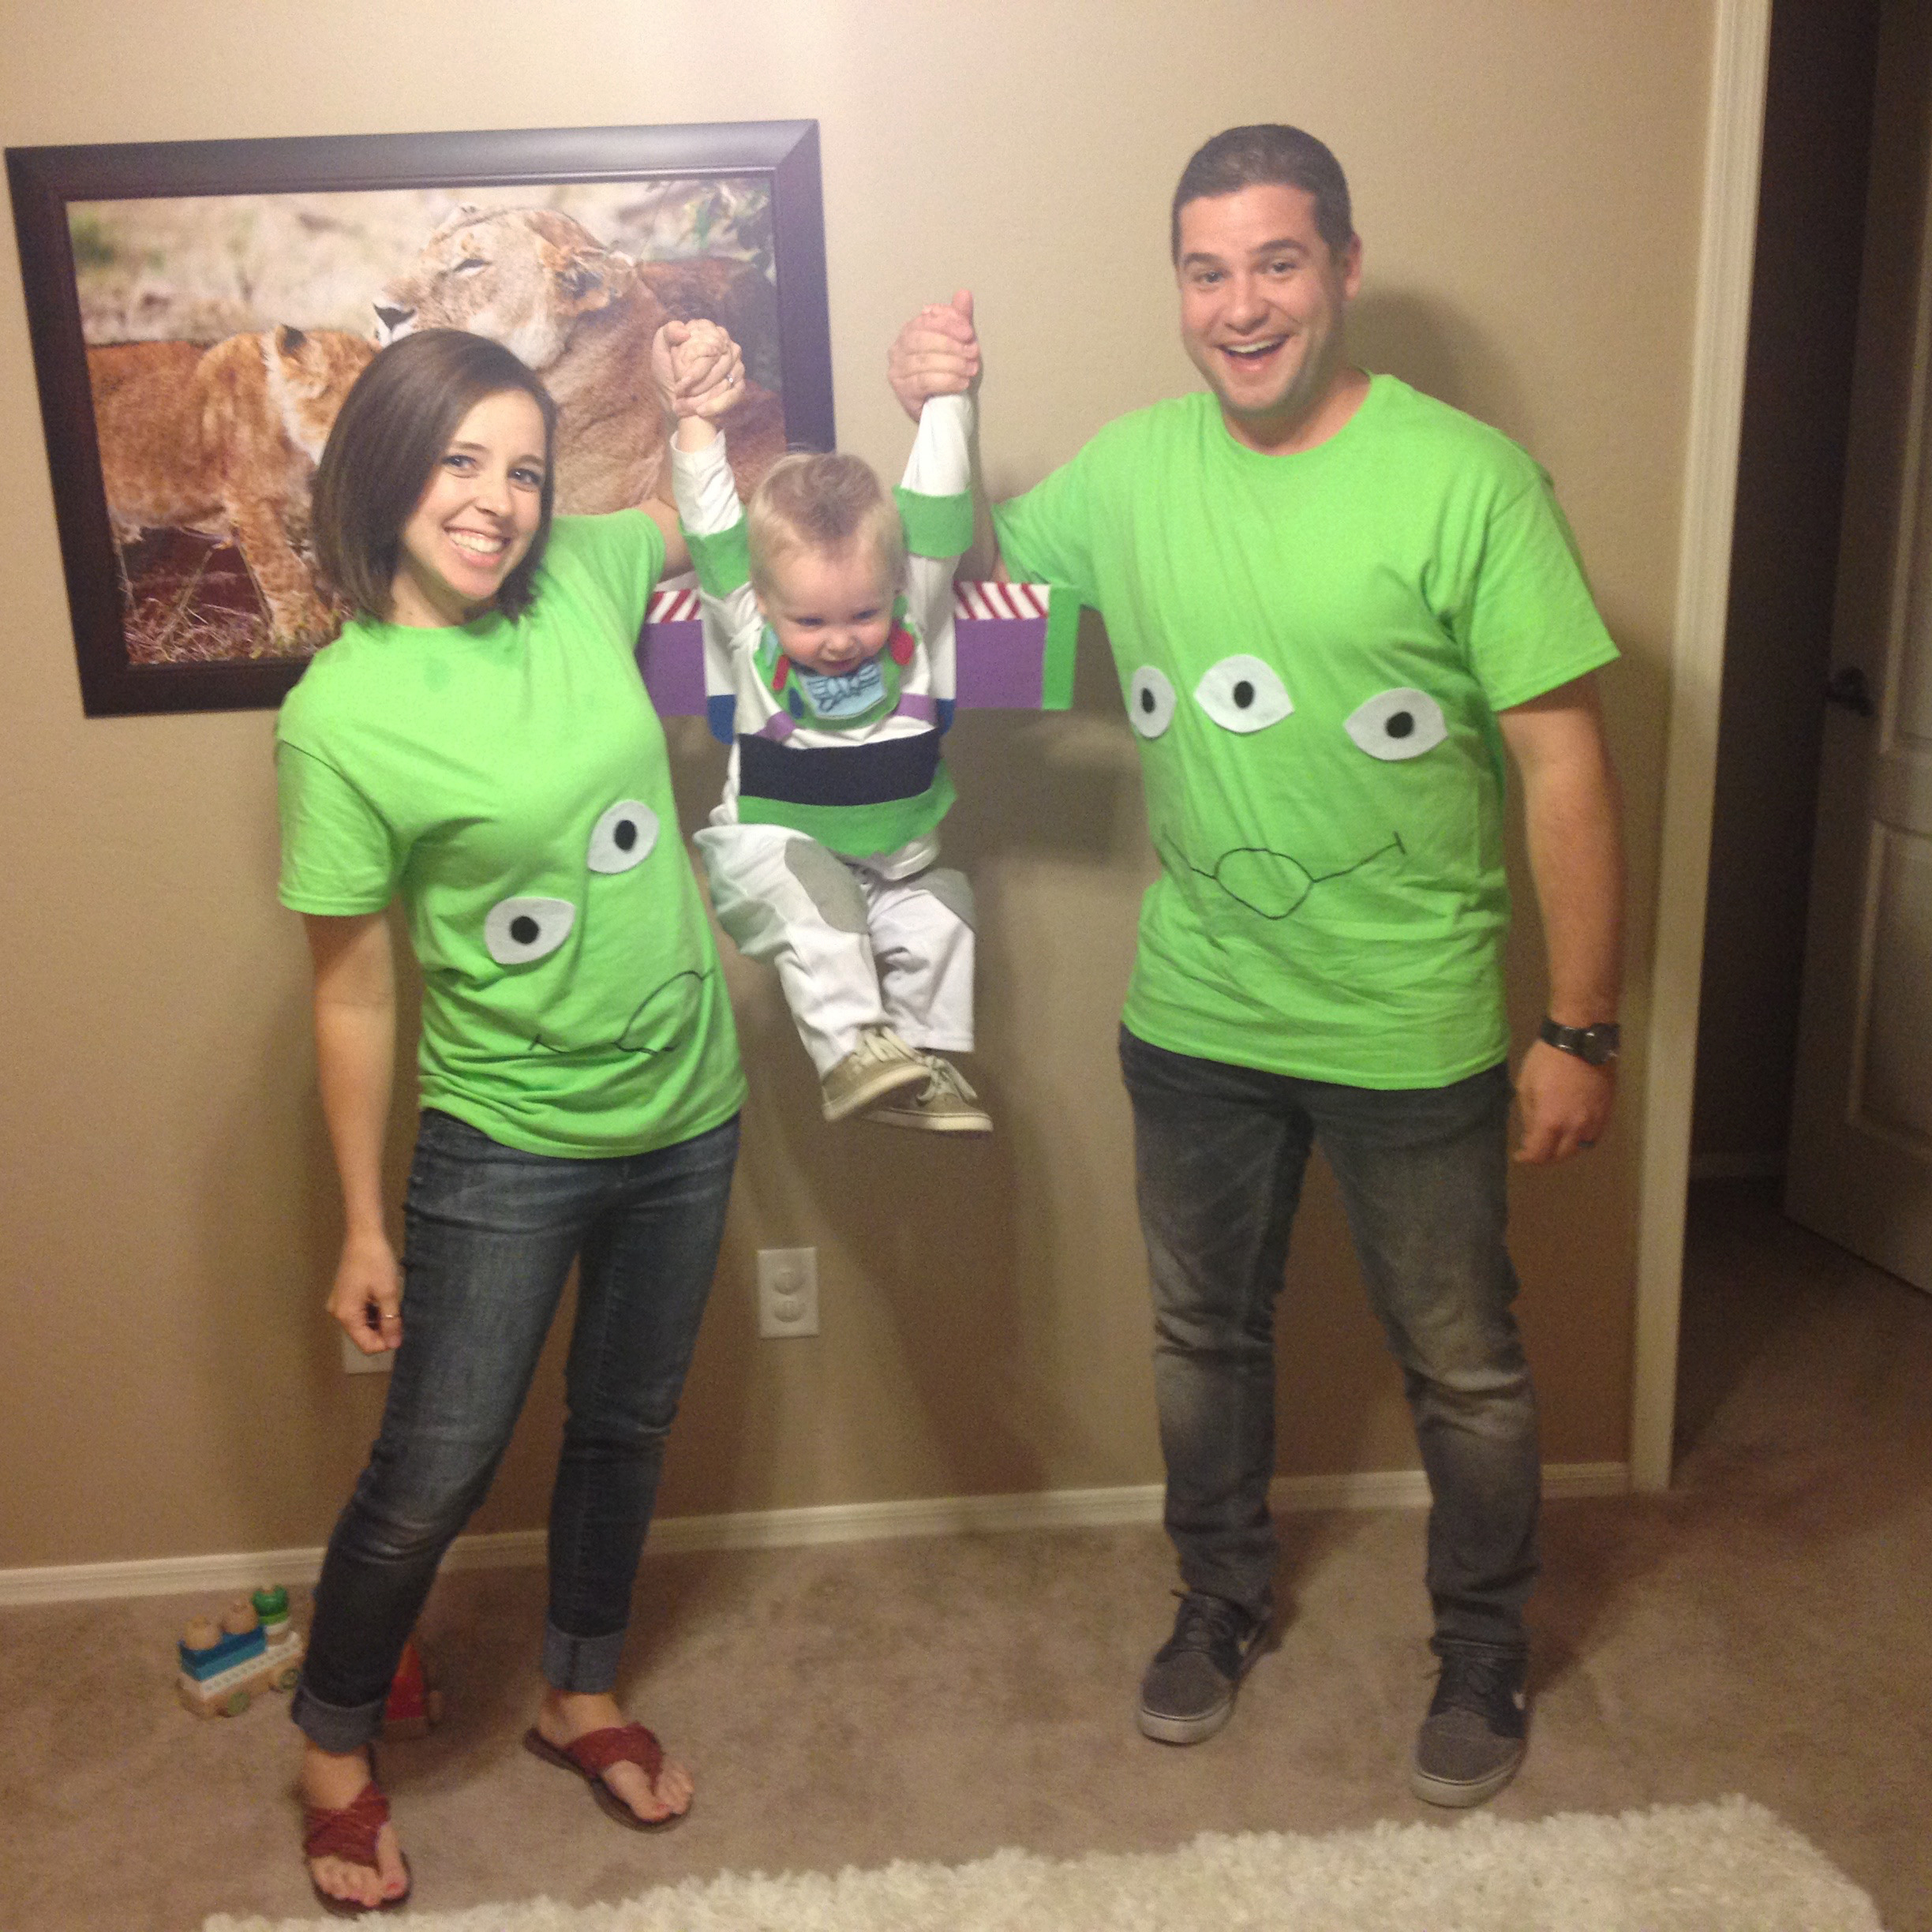 IMG_3635  sc 1 st  A Happier Home & DIY Family Halloween Costume Ideas - A Happier Home